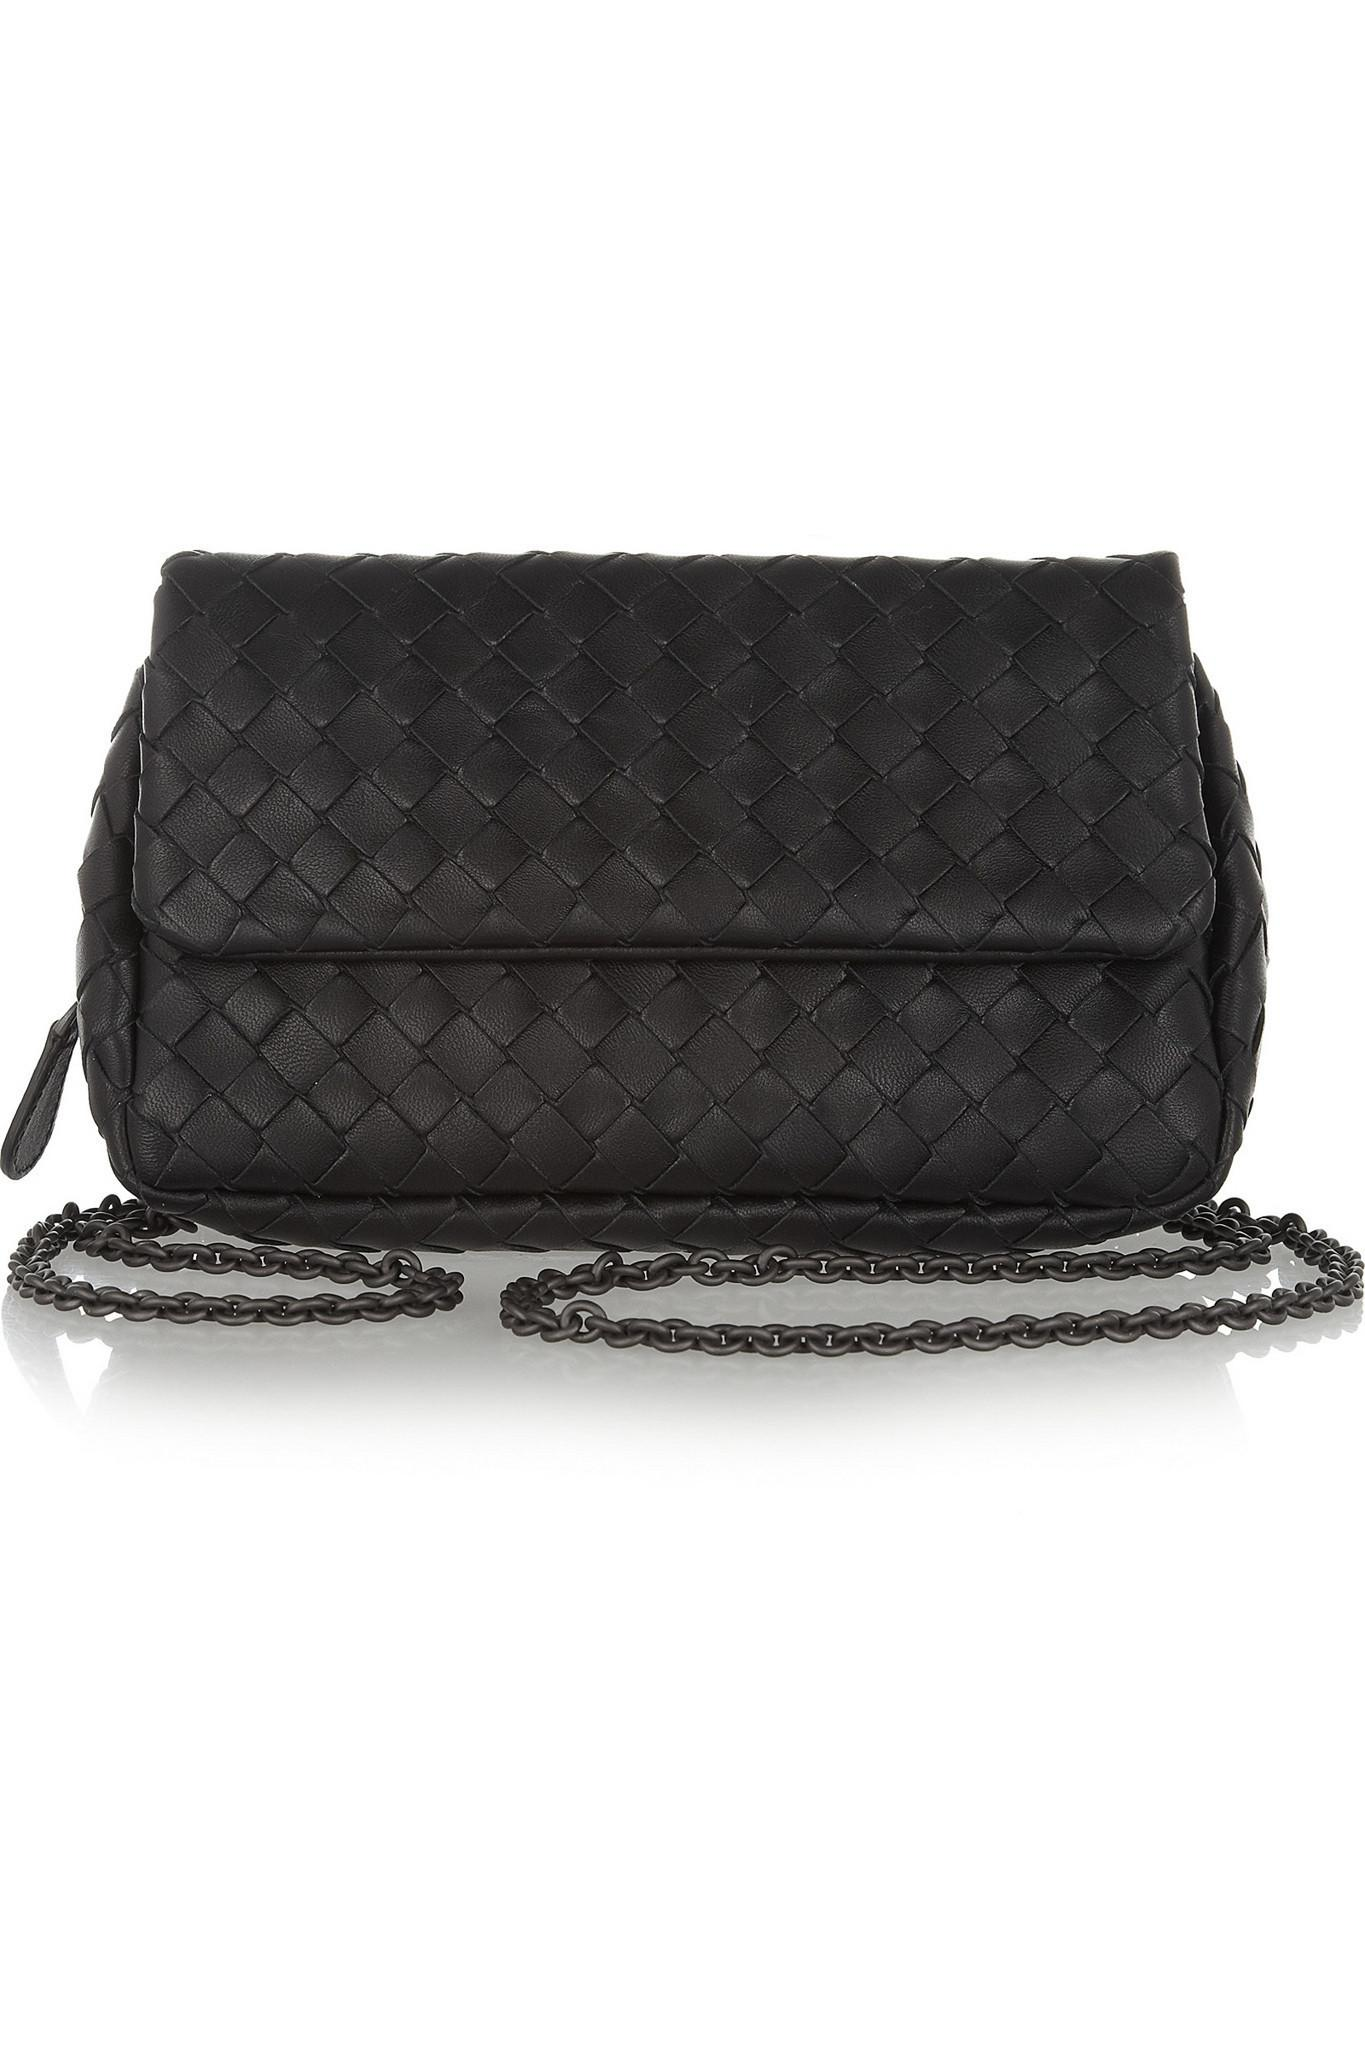 f91dcf92a7 Bottega Veneta. Women s Black Messenger Mini Intrecciato Leather Shoulder  Bag